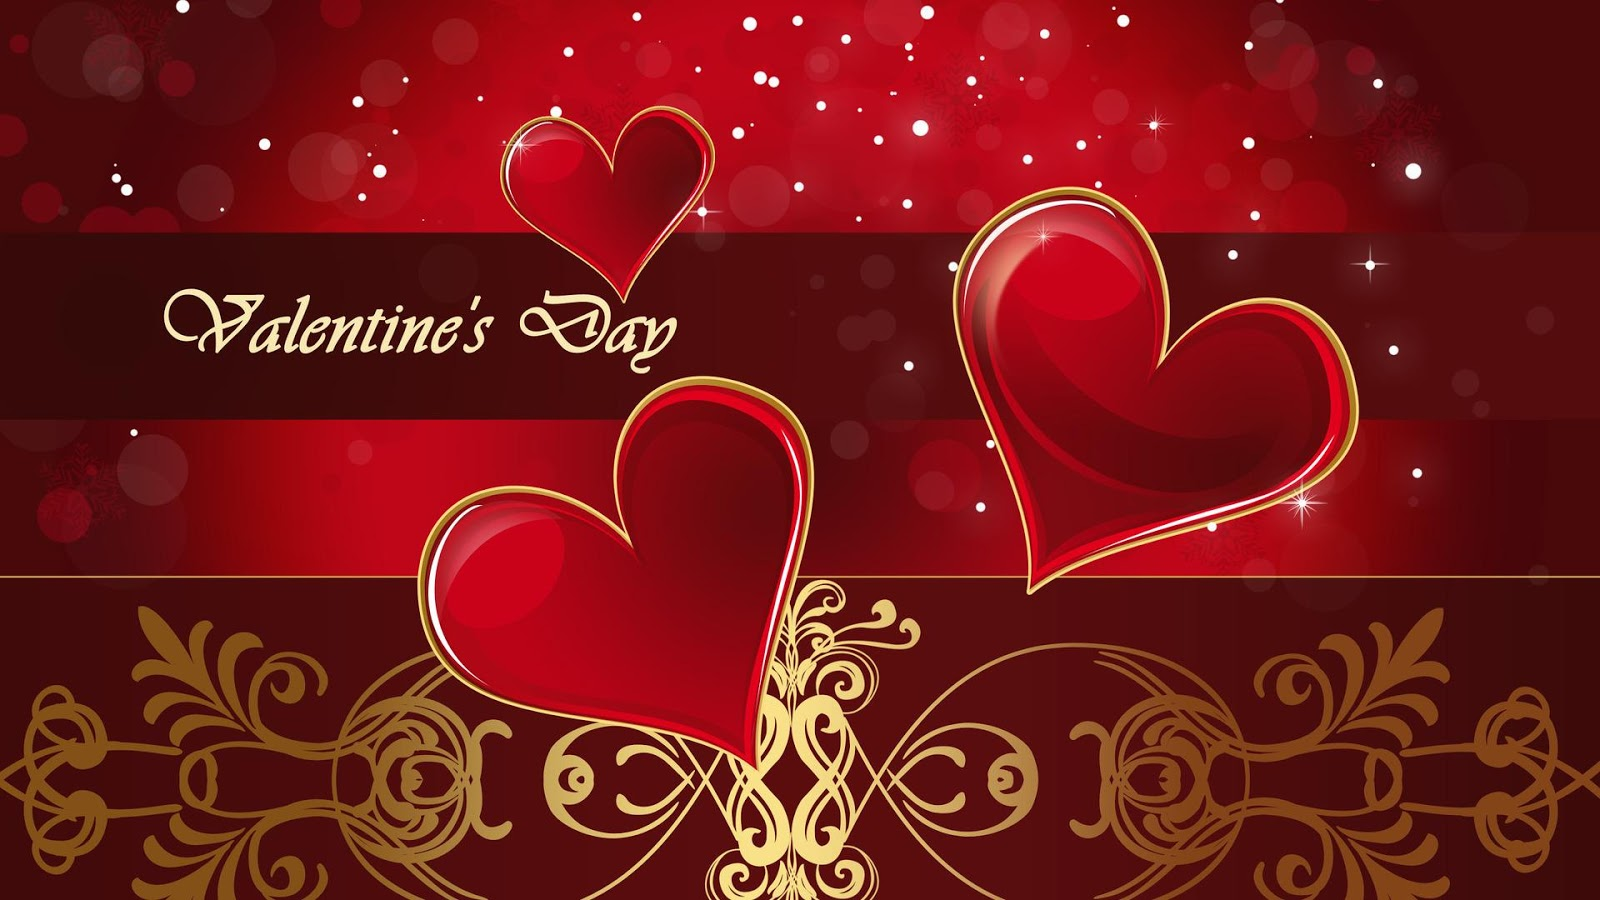 Romantic Love Wallpapers Free Download